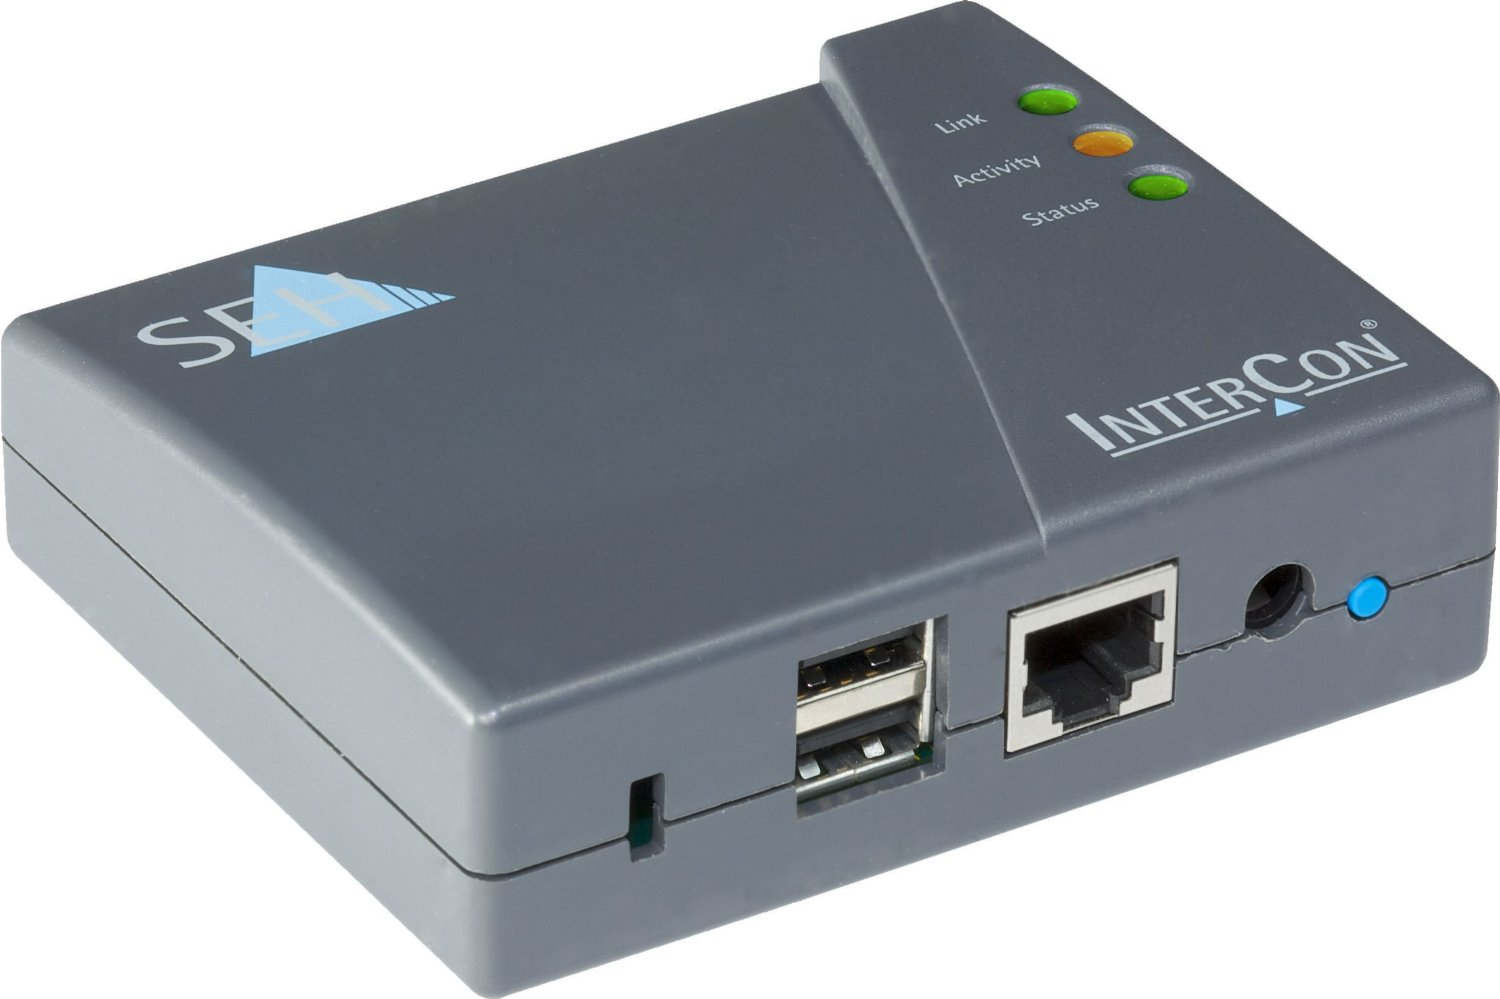 SEH PS03a Print server external USB 2.0 Printserveris